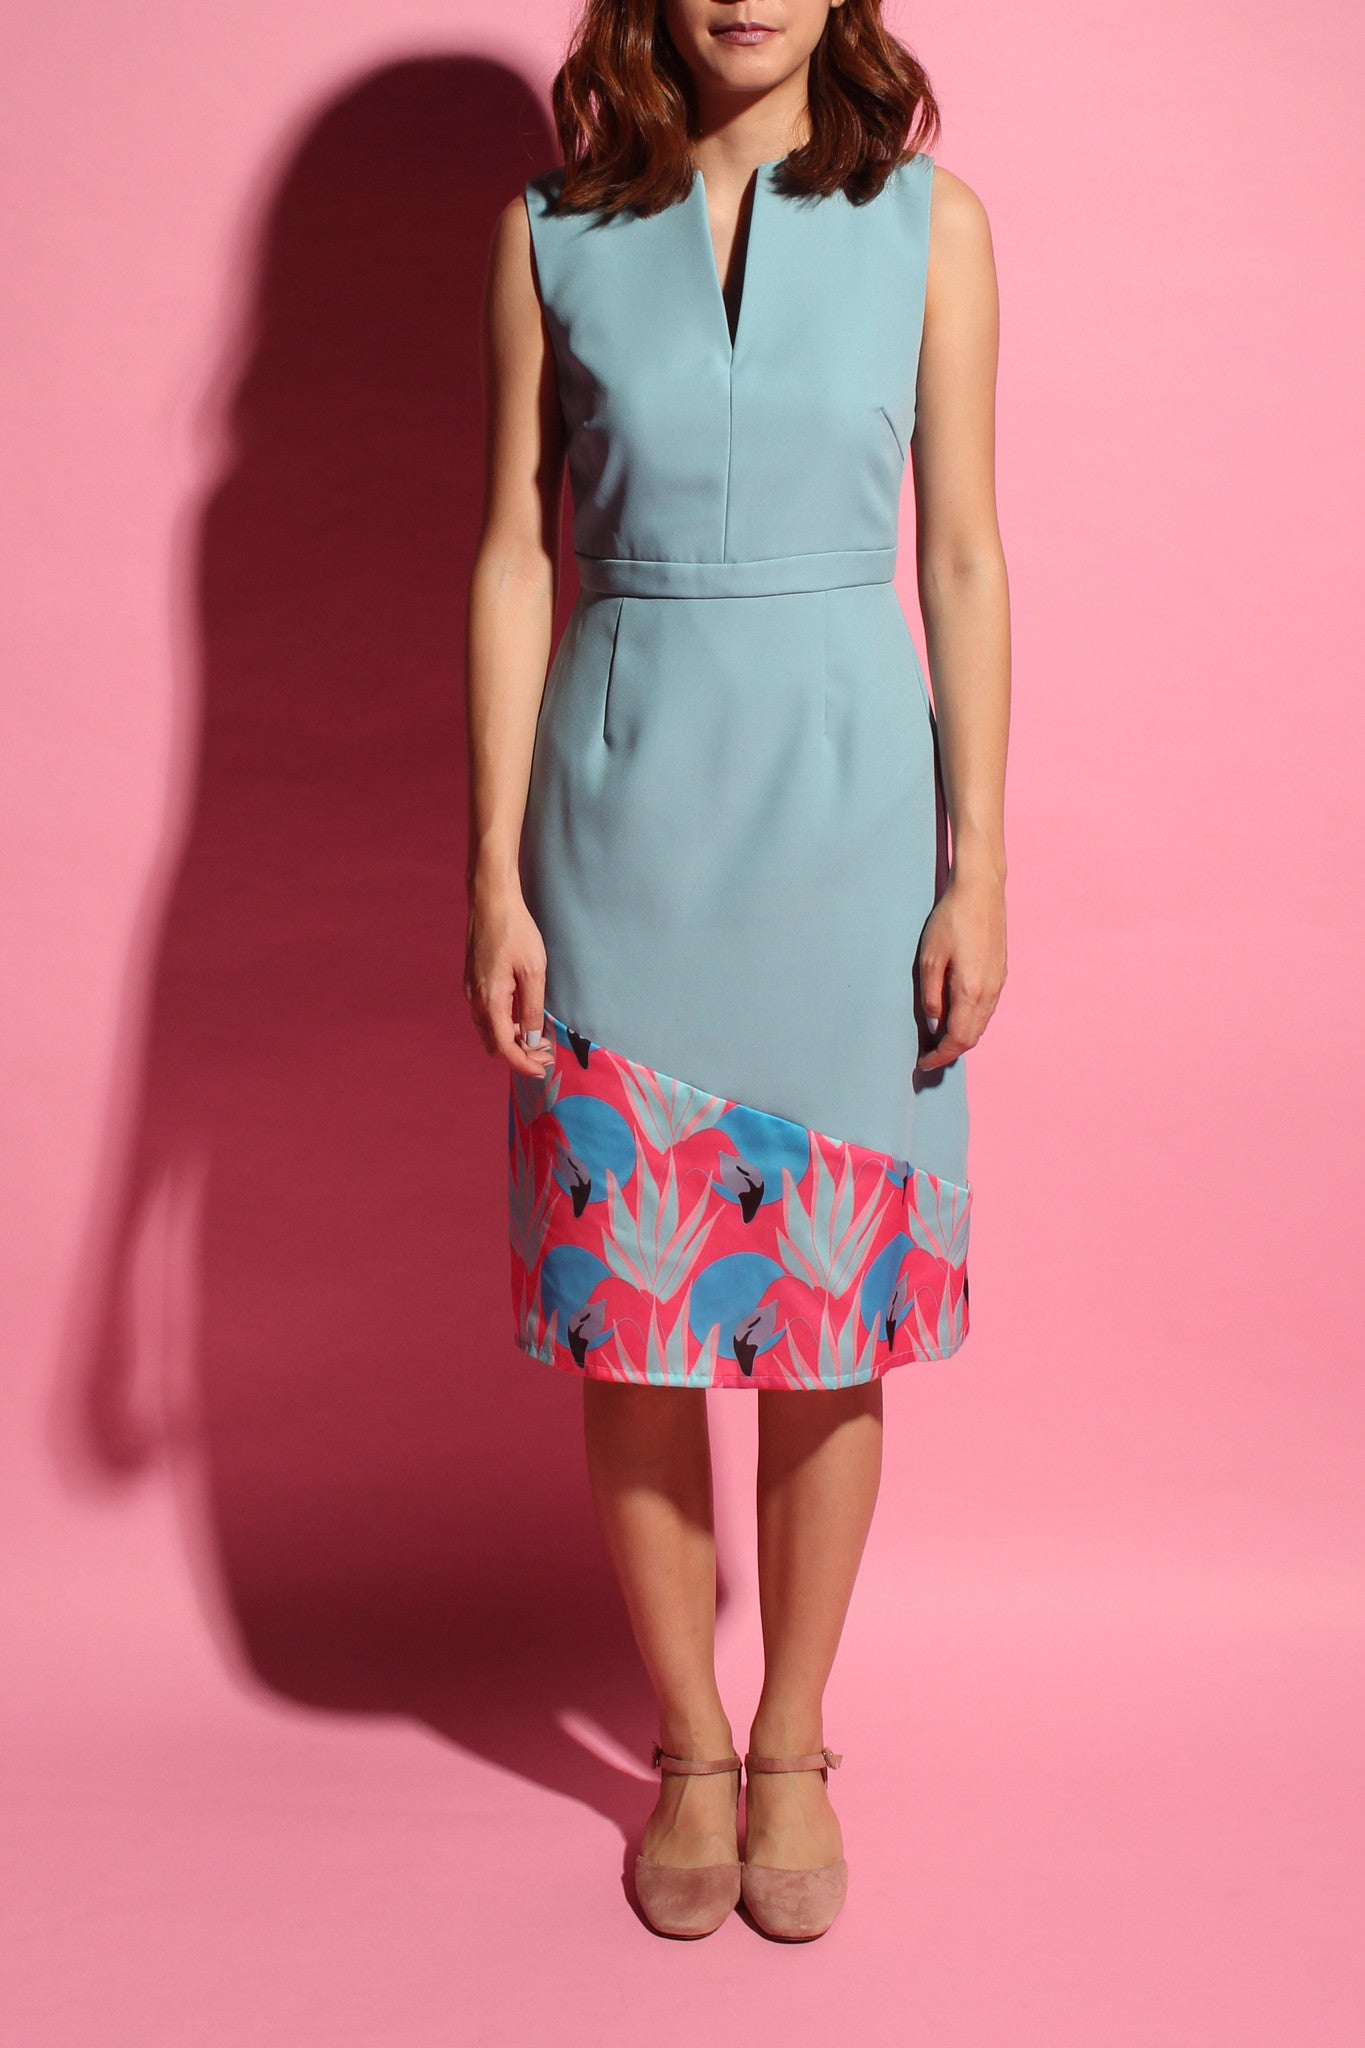 V-Neckline Flamingo Dress - Light Teal